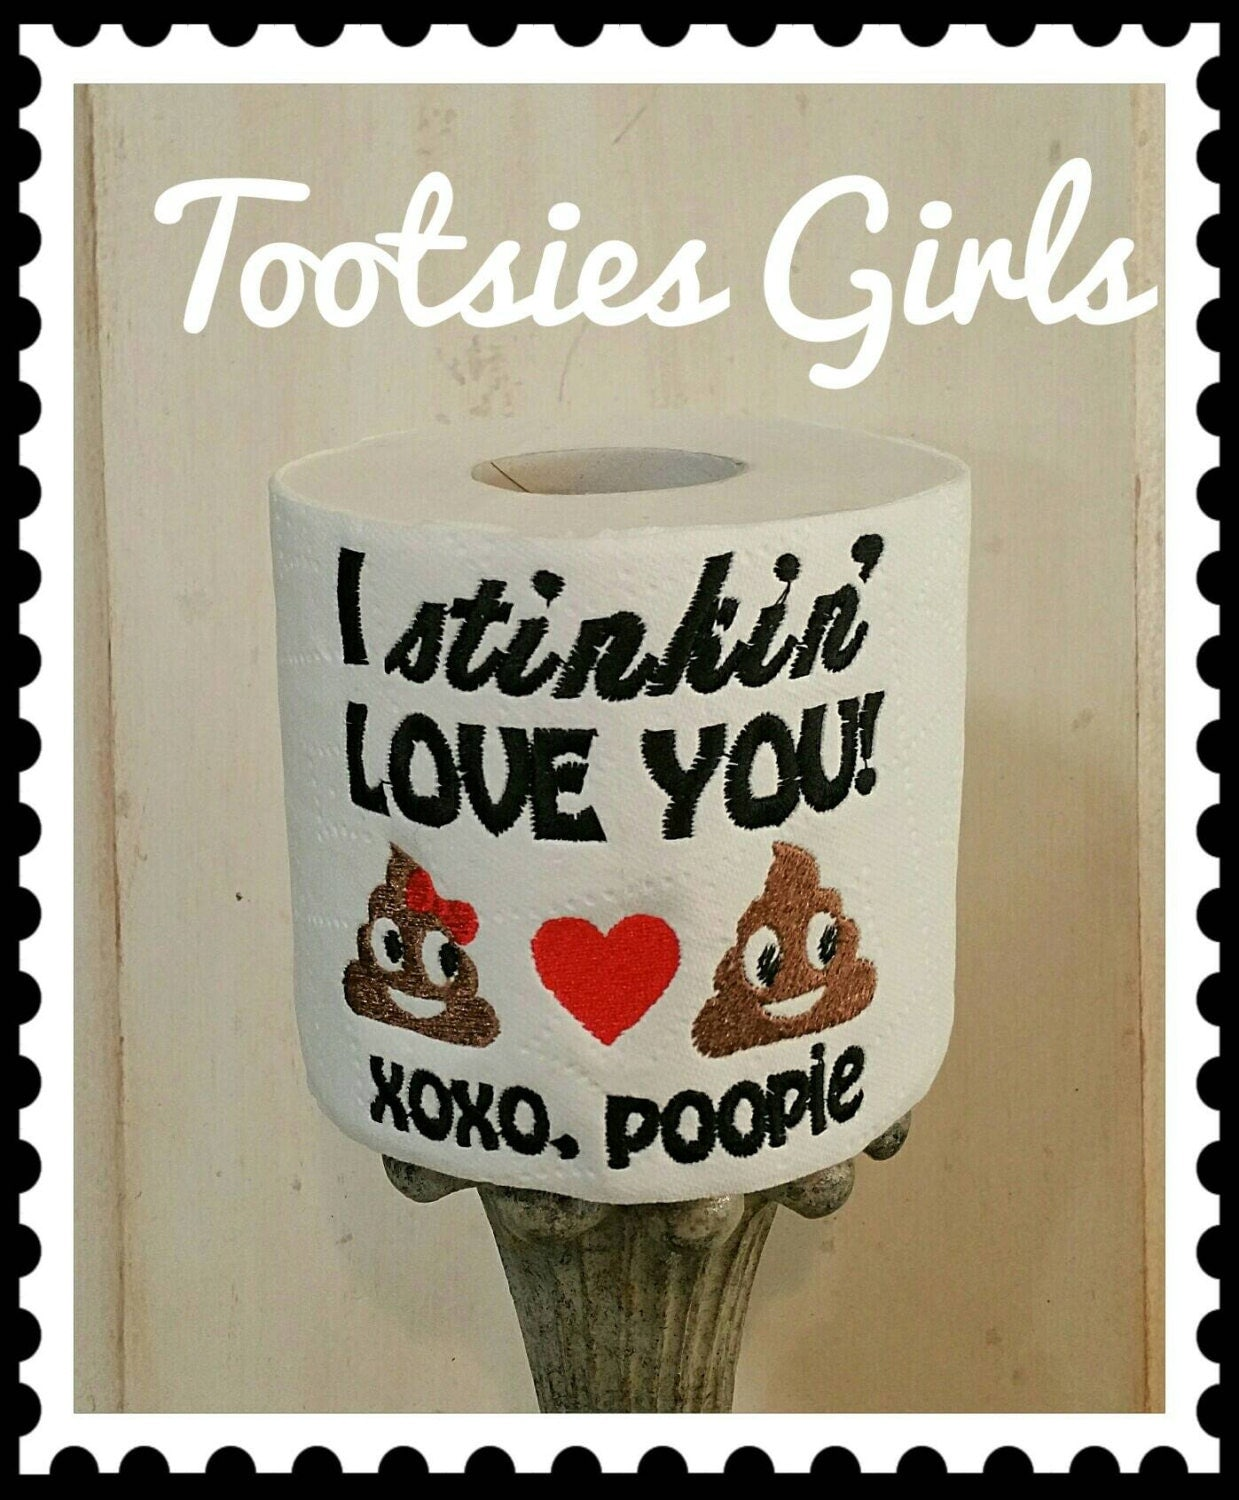 specializing in unique and quirky embroidered by tootsiesgirls poop emoji cute toilet paper gift great for boyfriend and girlfriend or i love you present personalized and fast shipping last minute gift